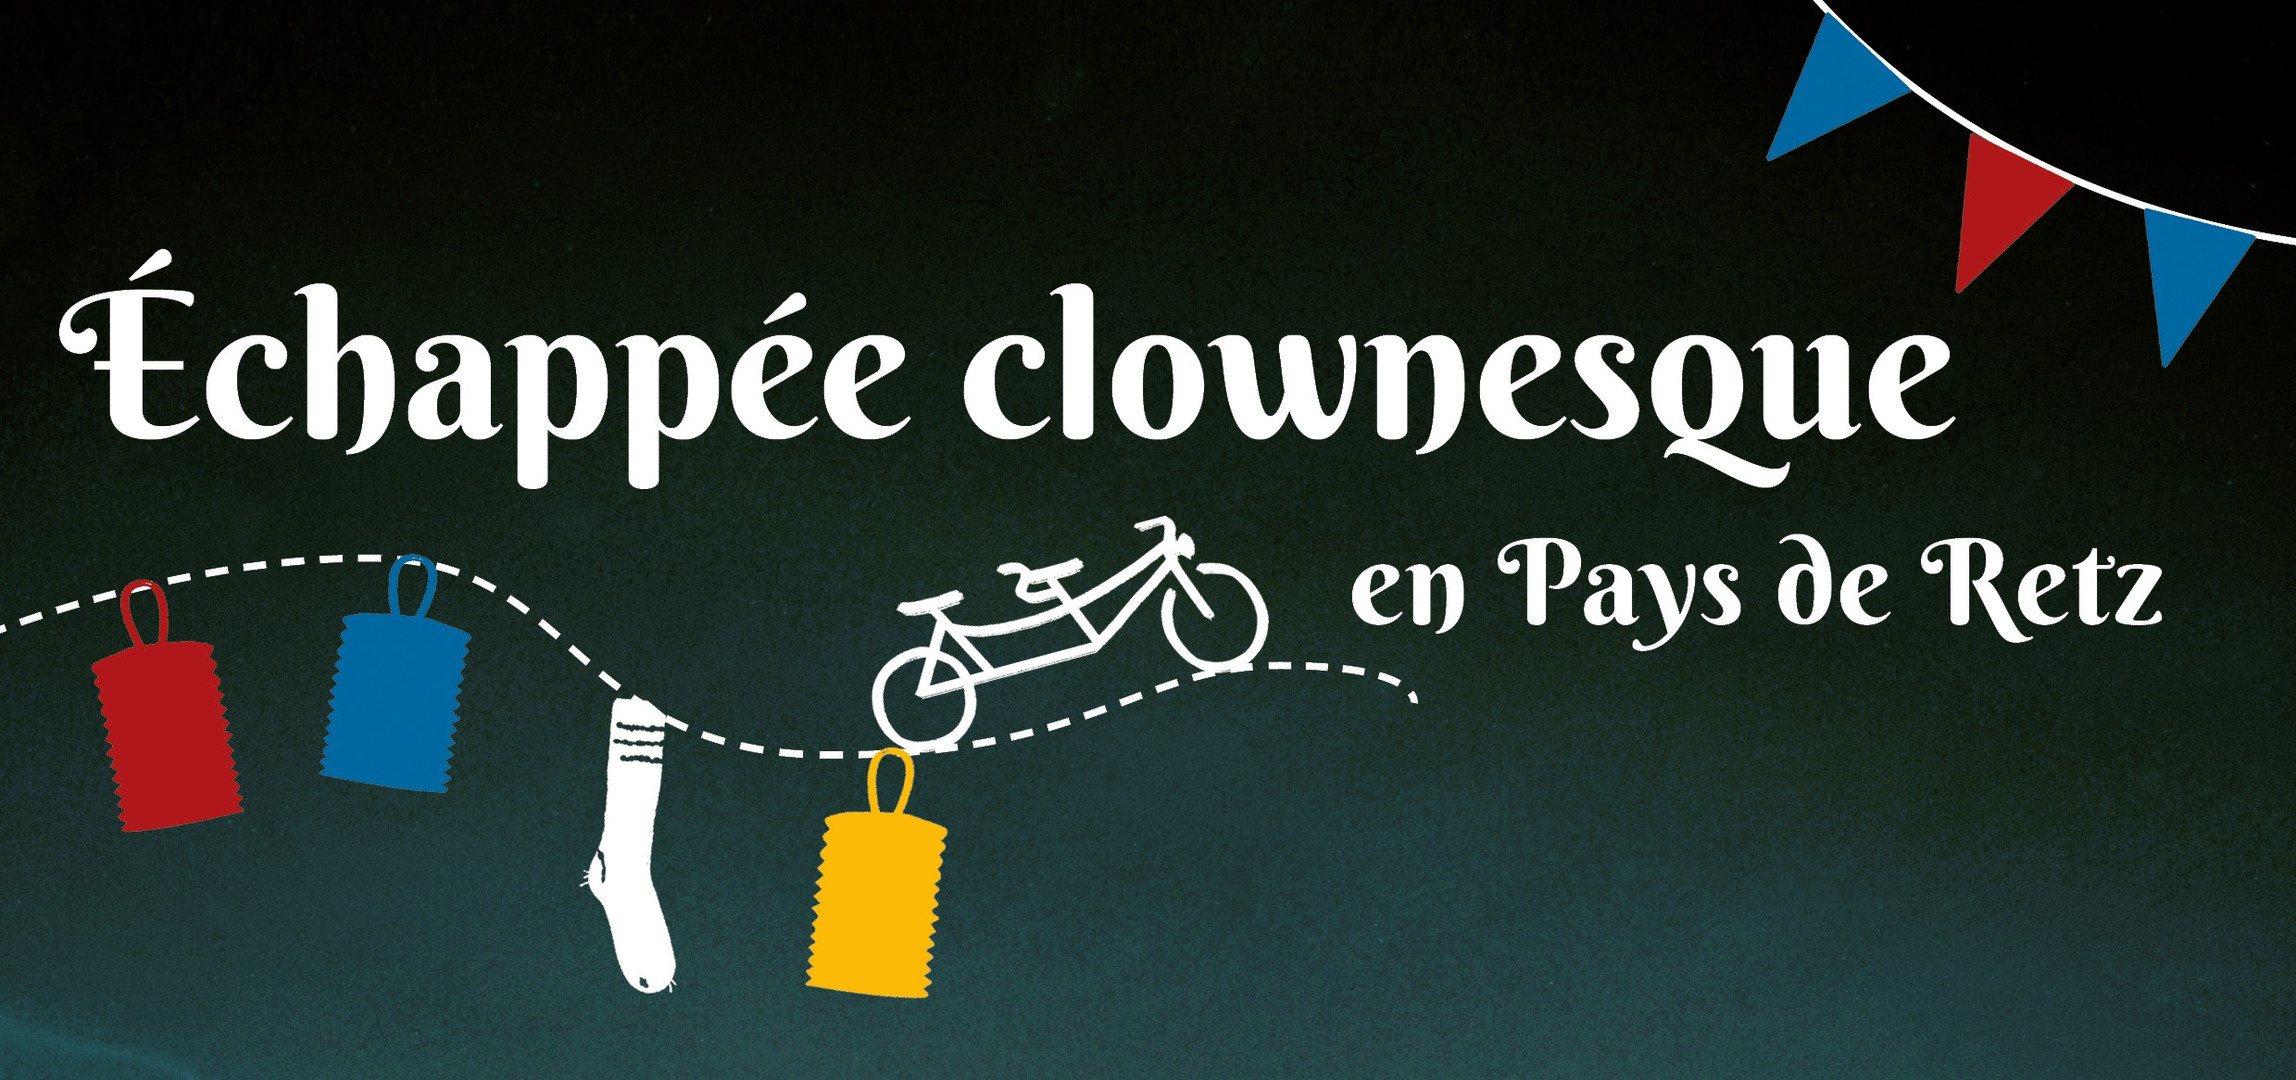 ECHAPPÉE CLOWNESQUE